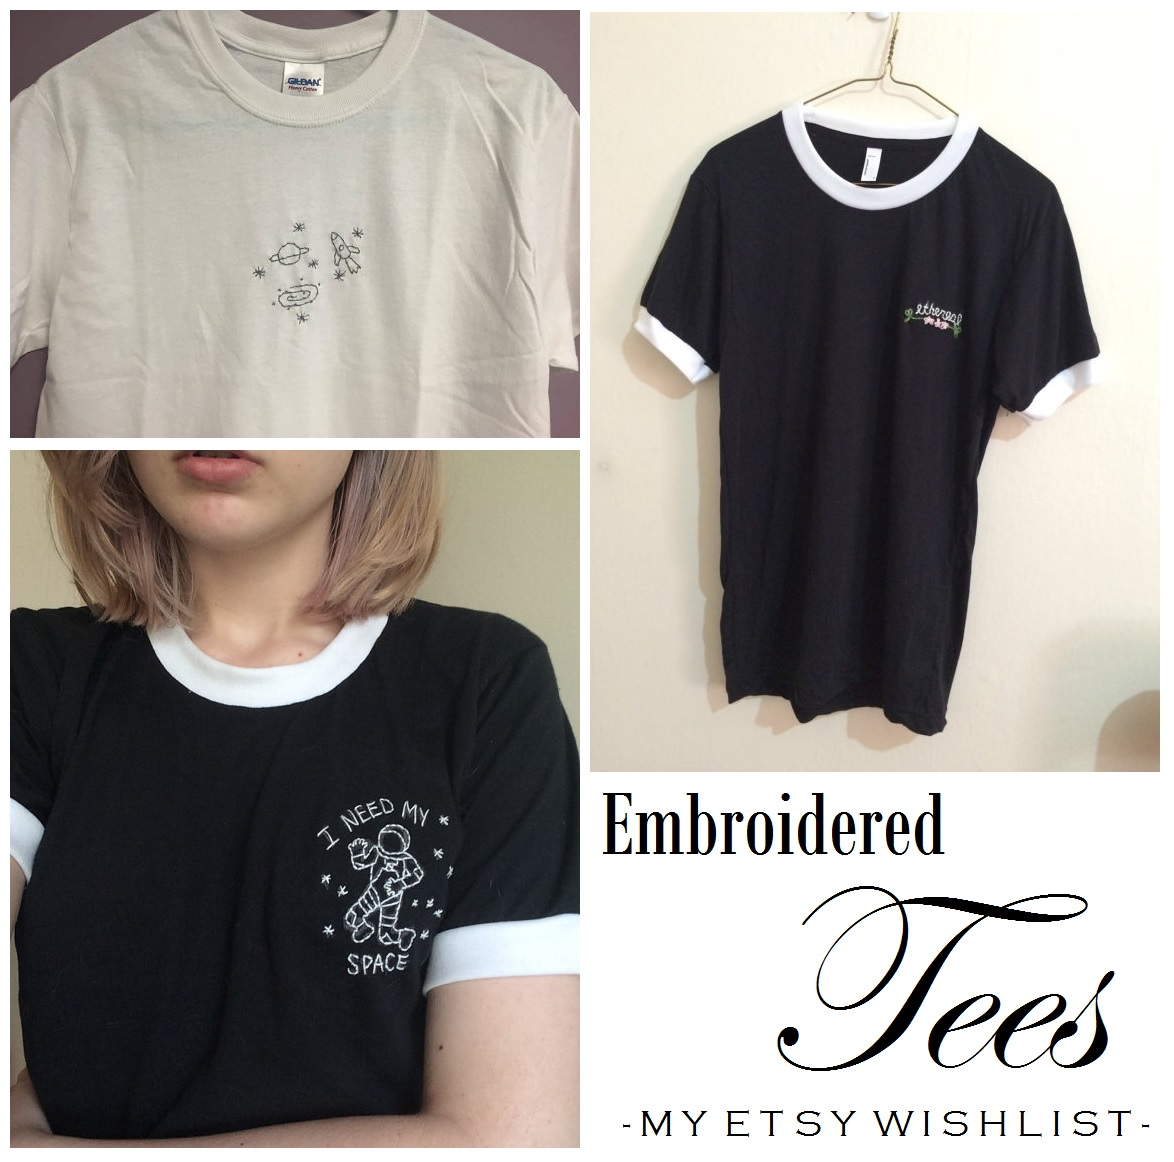 ETSY WISHLIST GRUNGE EMROIDERED TEES